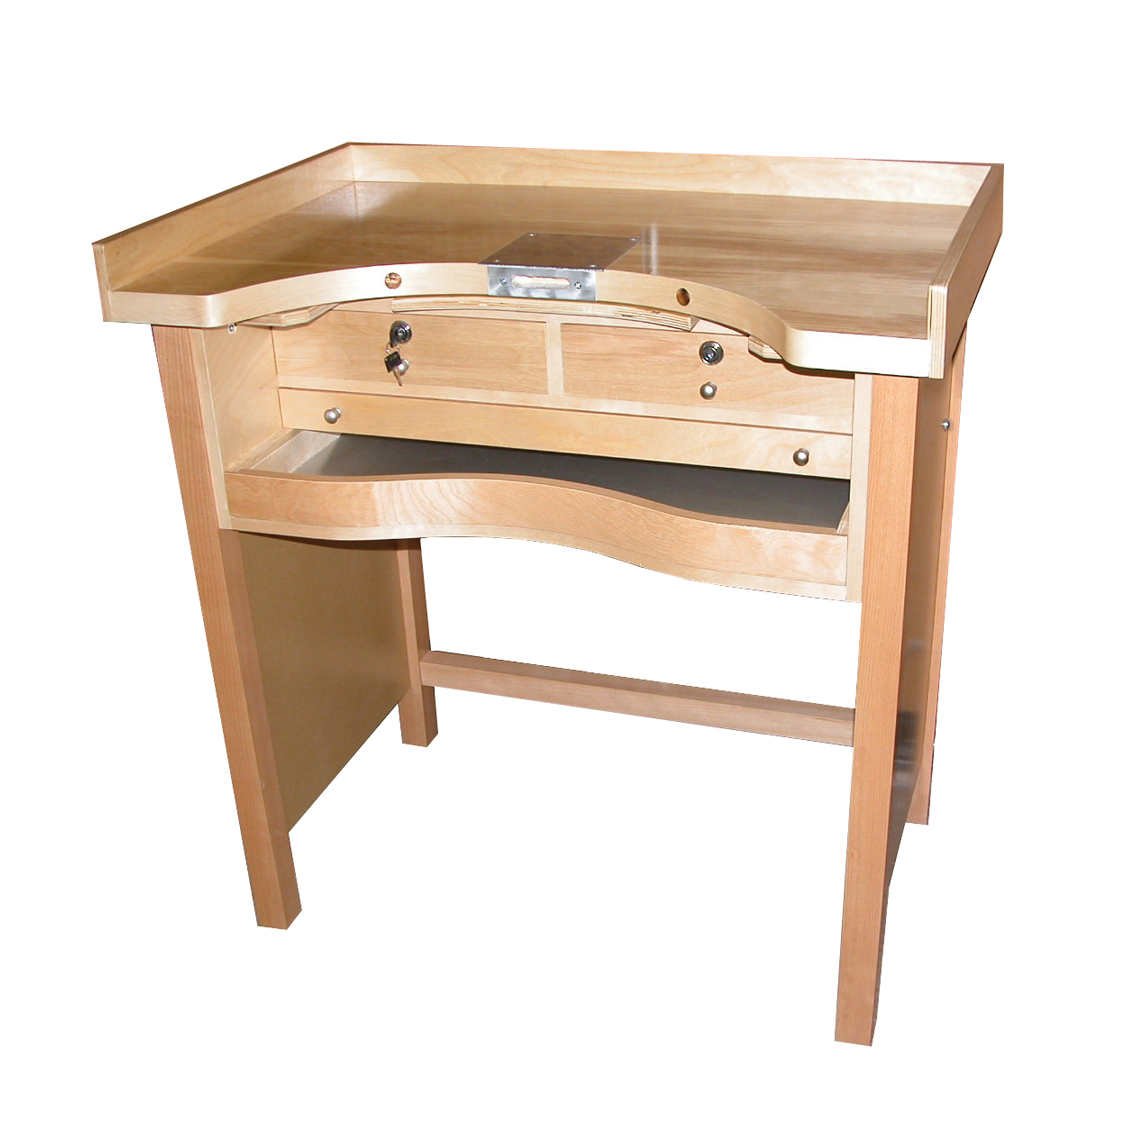 Berco Jewelry Item Workbench Premium Hardwood